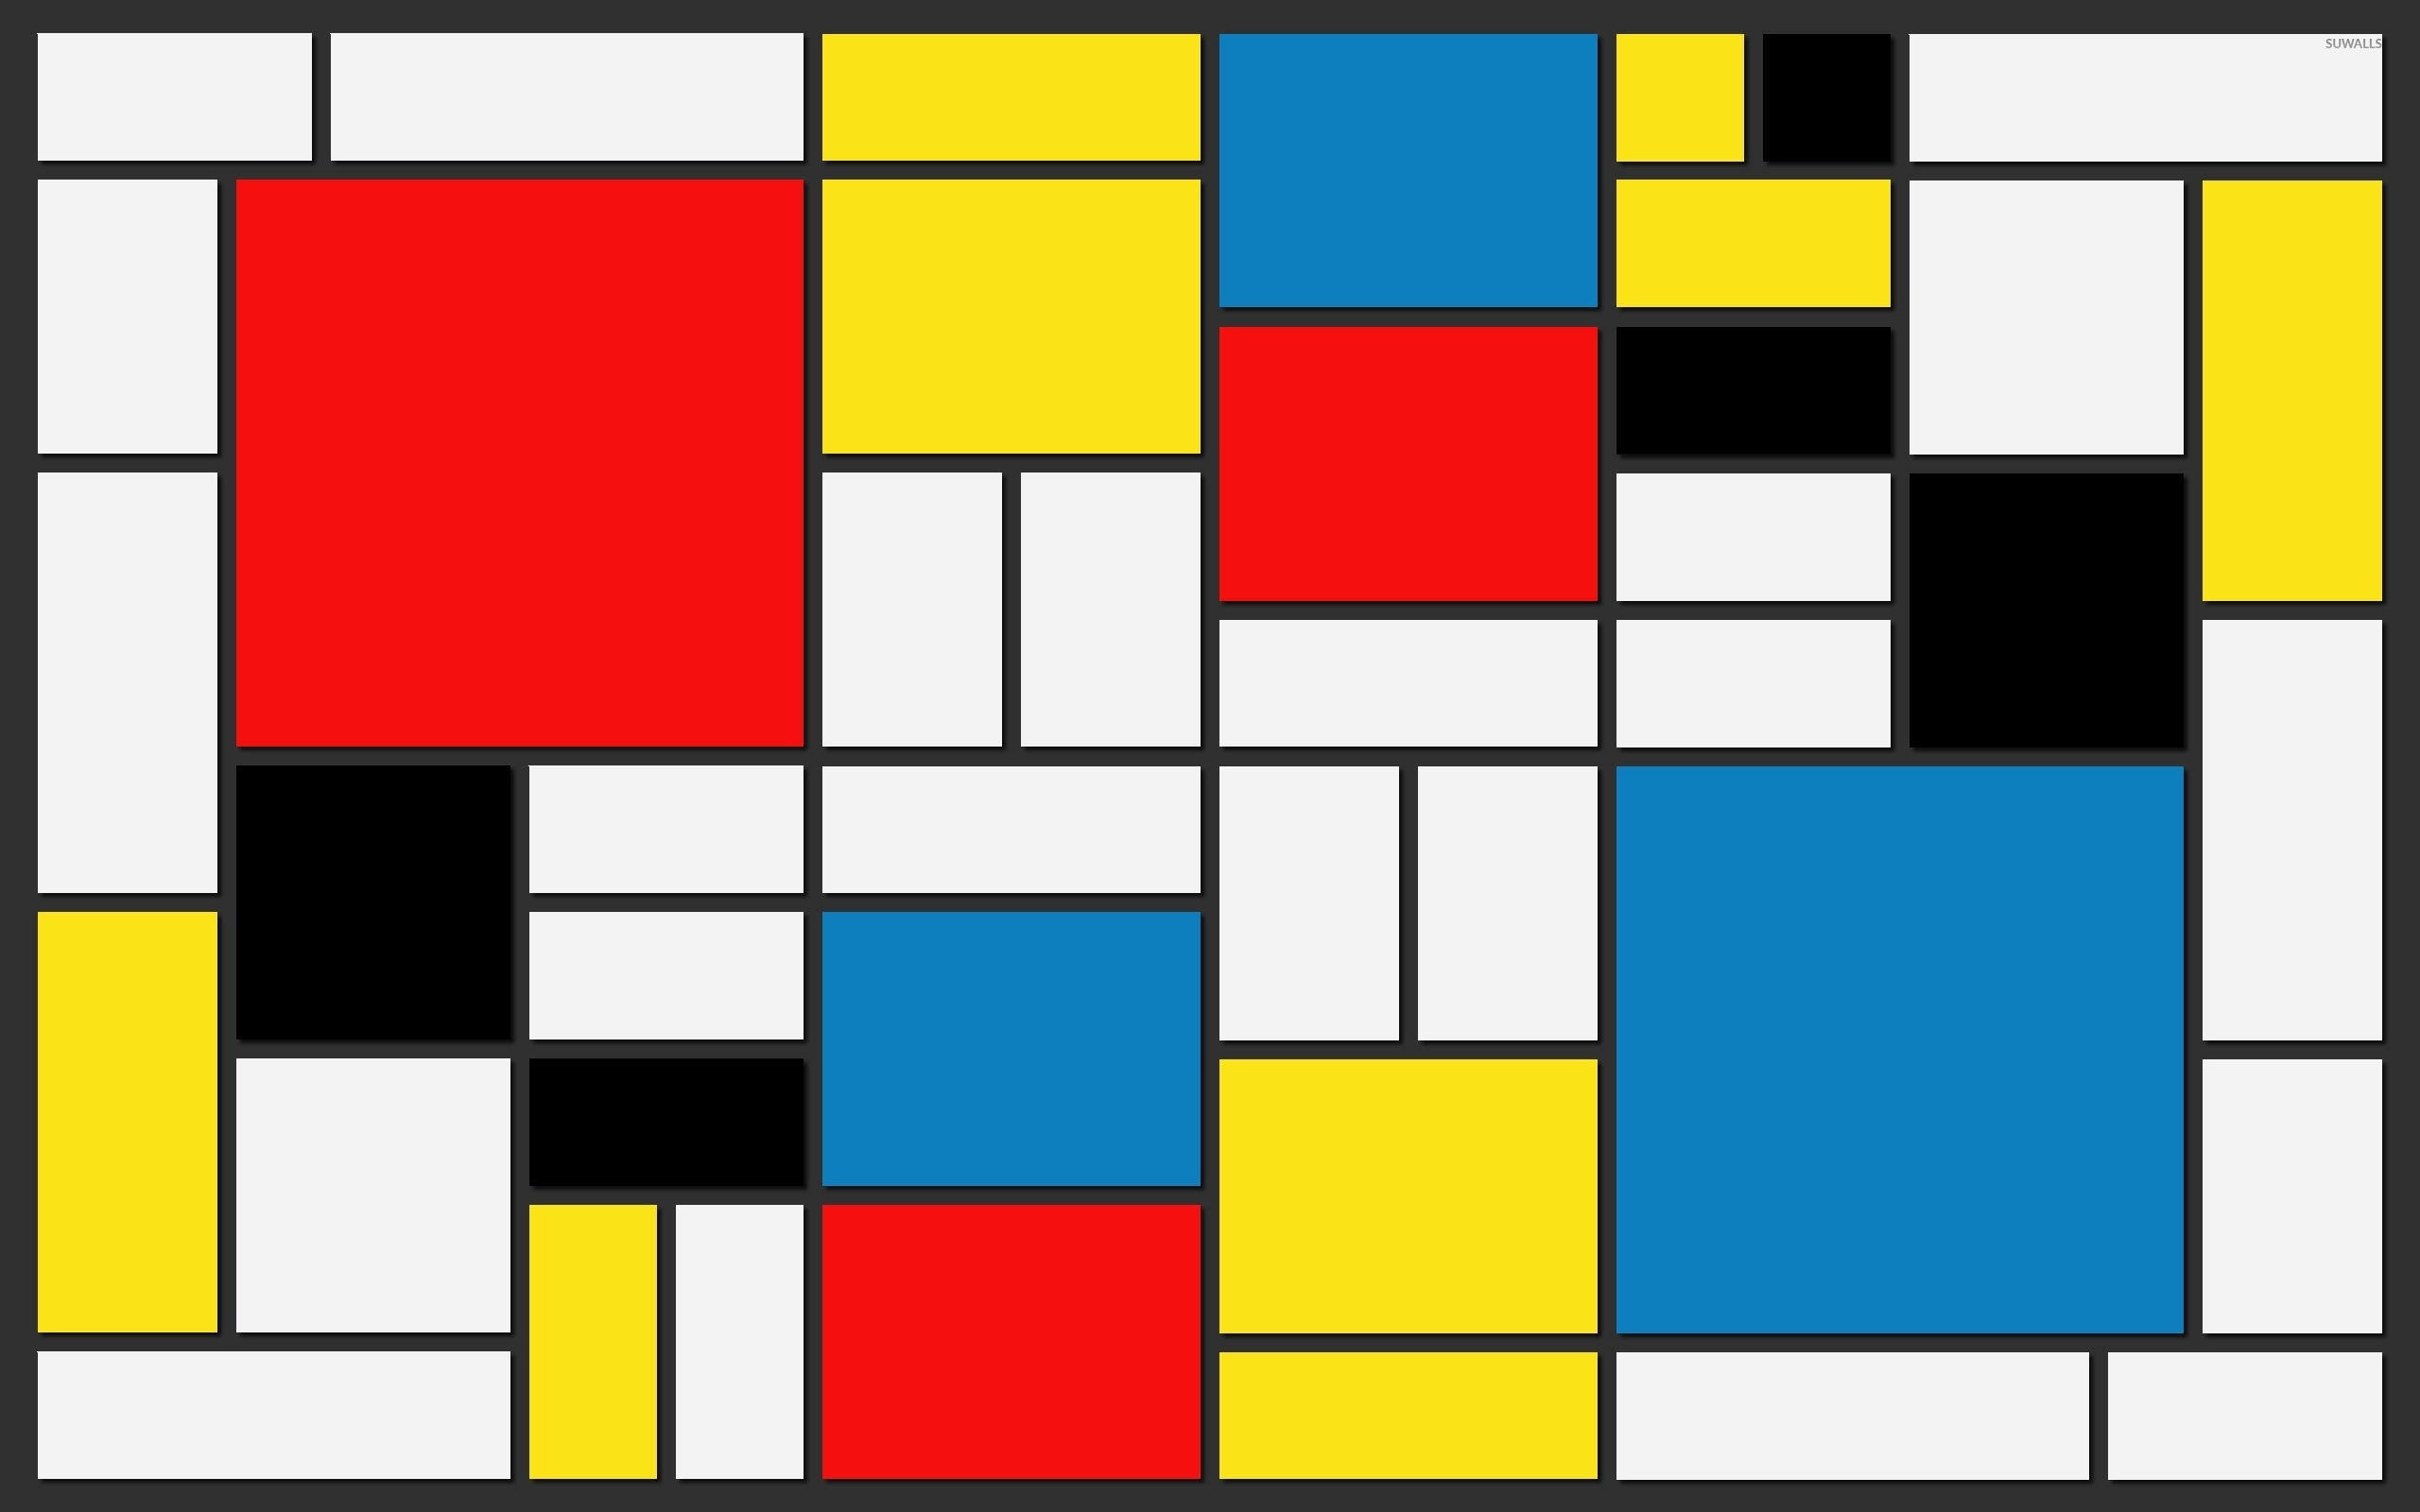 Squares And Rectangles Wallpaper Abstract Wallpapers HD Wallpapers Download Free Images Wallpaper [1000image.com]